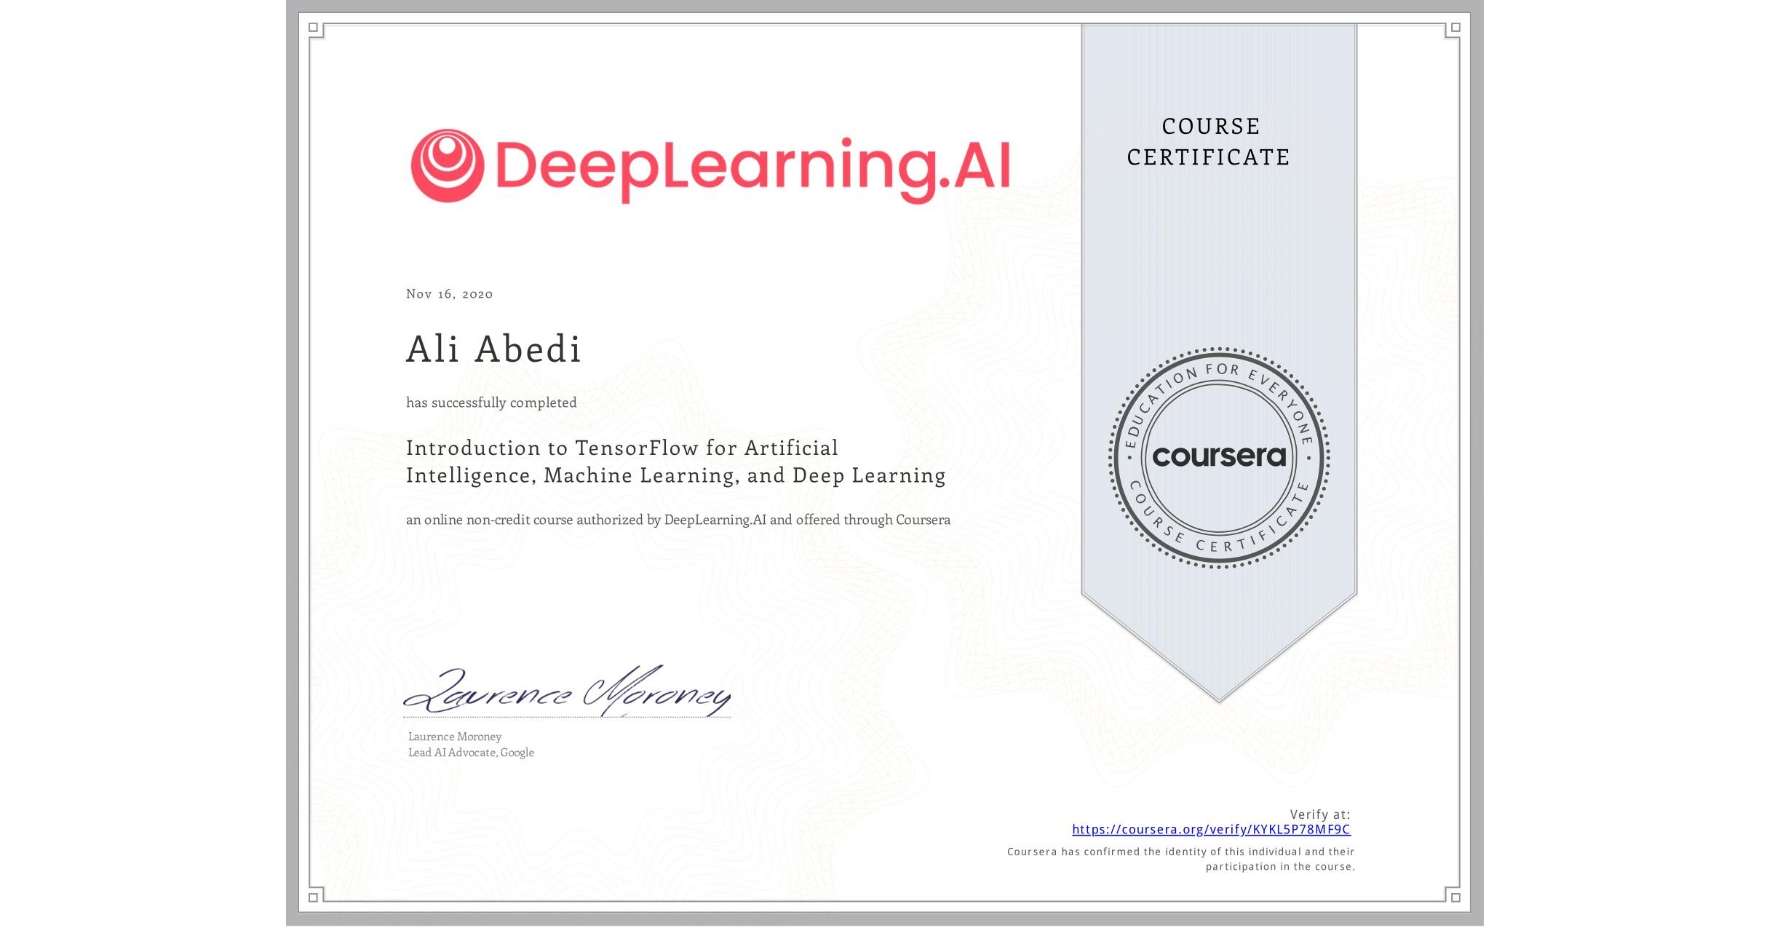 View certificate for Ali Abedi, Introduction to TensorFlow for Artificial Intelligence, Machine Learning, and Deep Learning, an online non-credit course authorized by DeepLearning.AI and offered through Coursera